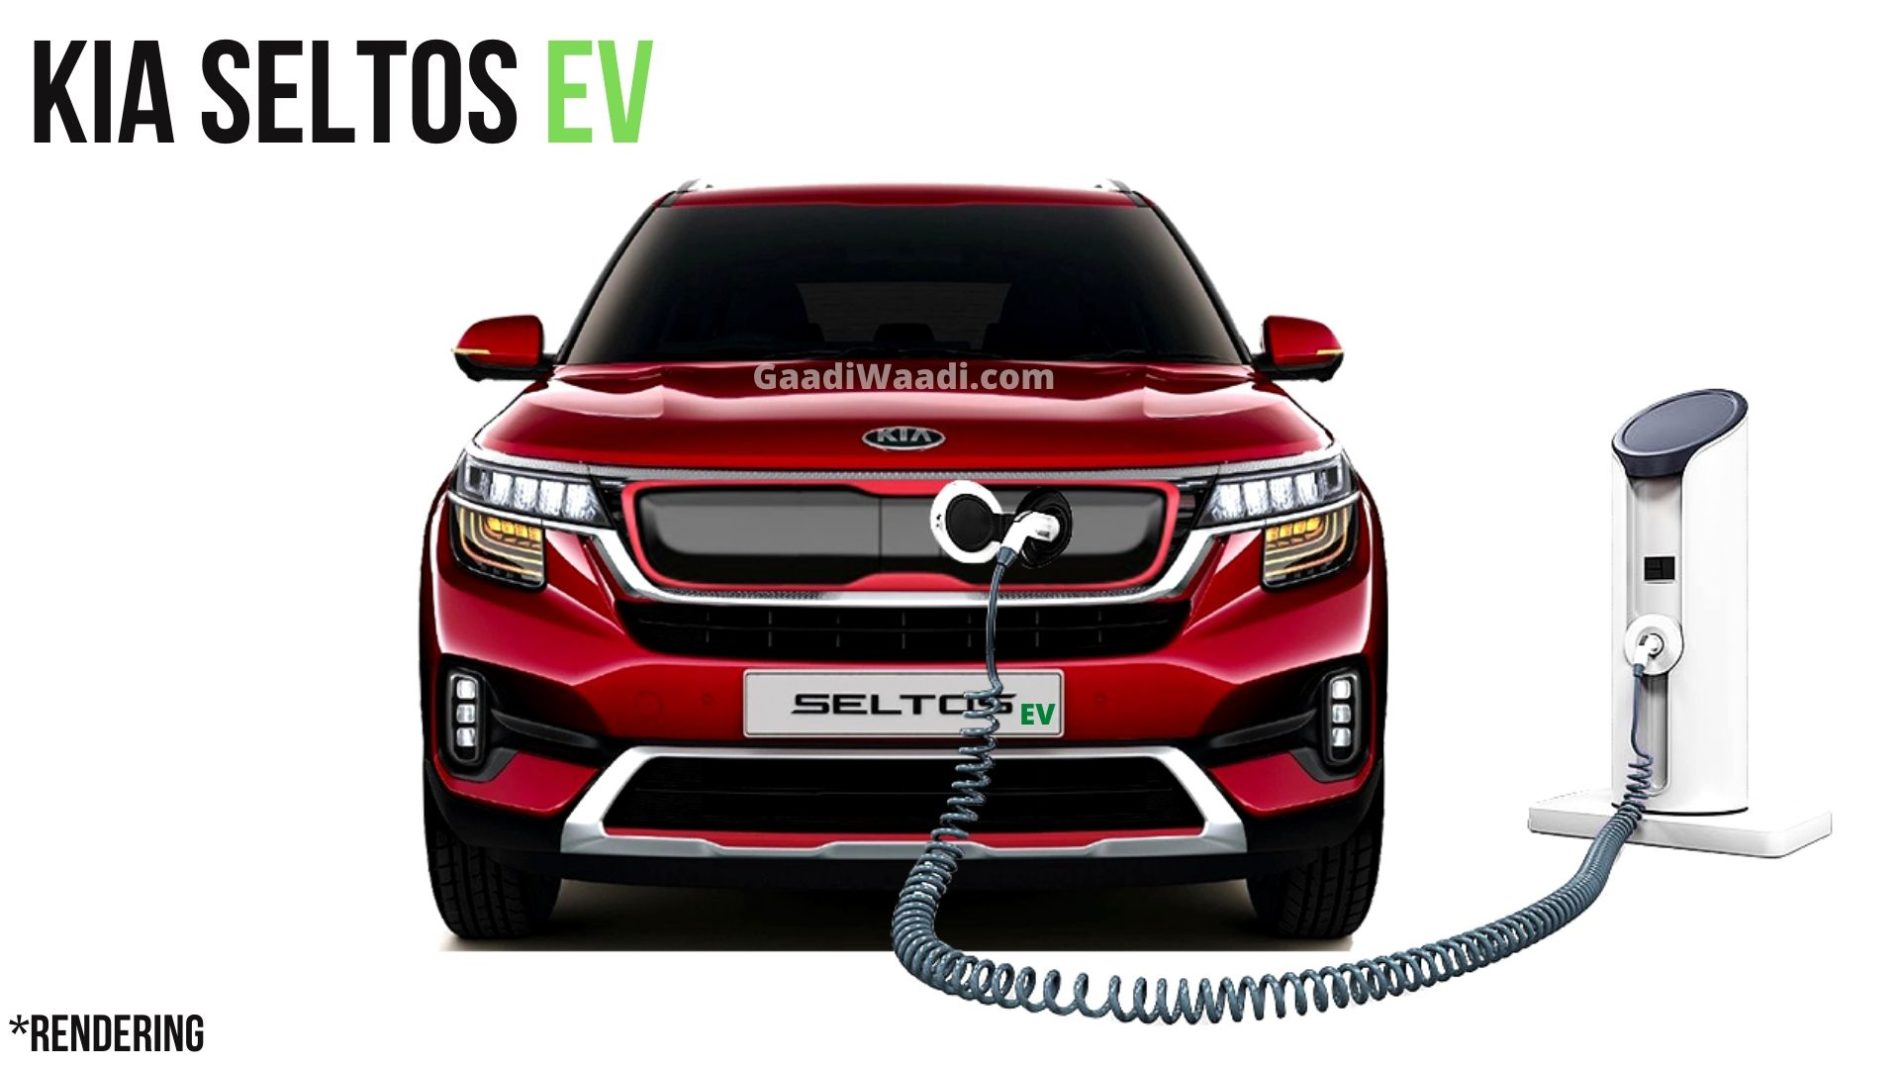 Kia Seltos EV Likely To Have 400 Km Range, 64 kWh Battery Pack